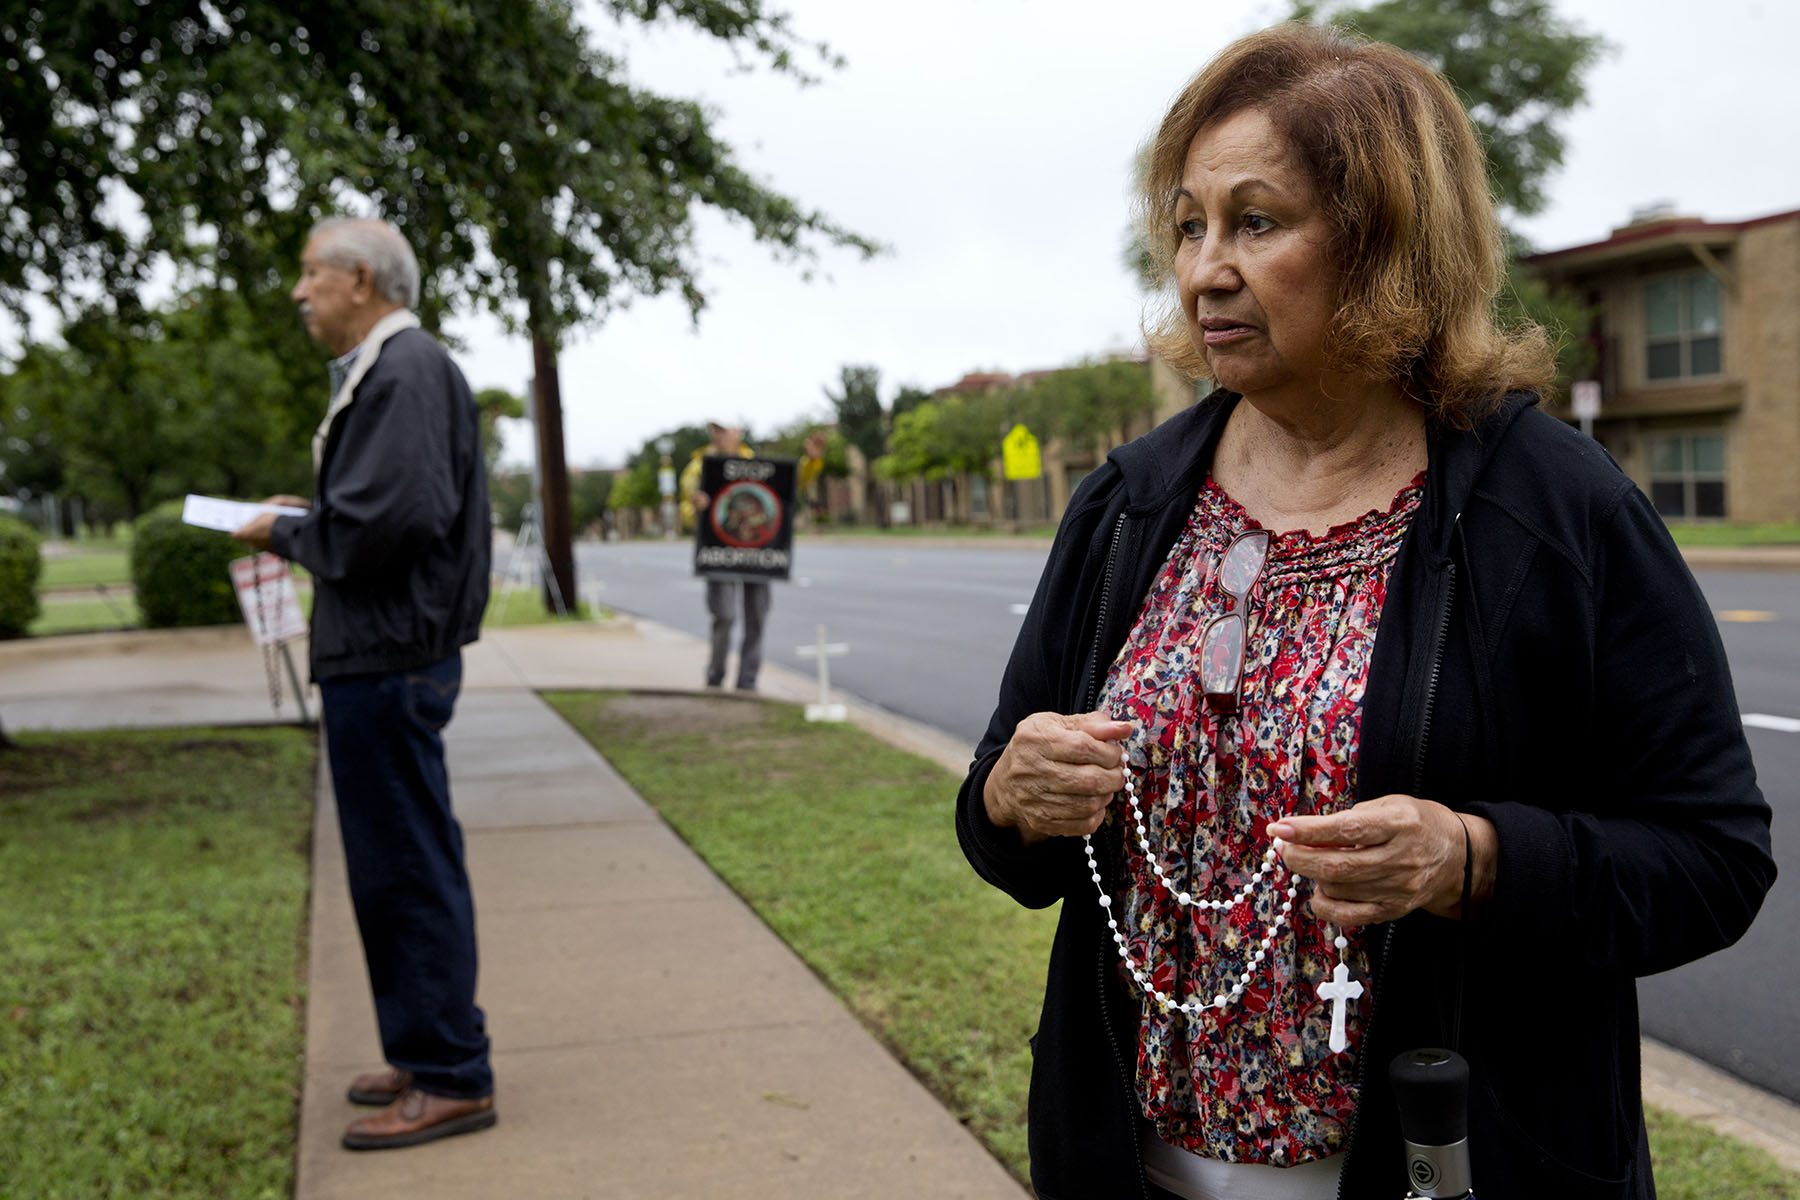 A woman holding a rosary prays outside an abortion clinic.